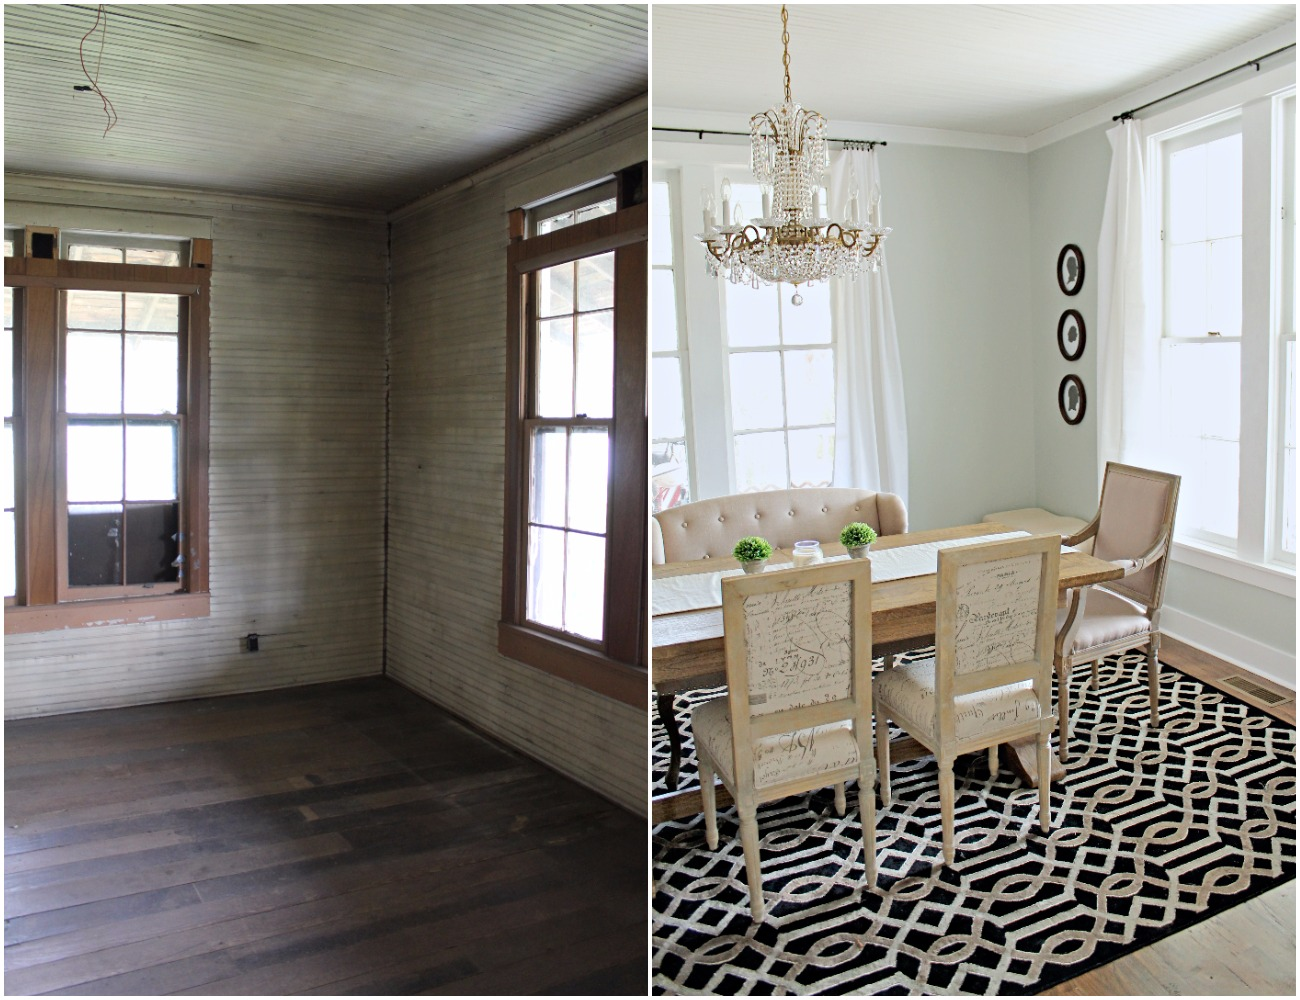 Elizabeth Burns Design  Budget-Friendly Fixer Upper Farmhouse Before and After House Flip - DIY Dining Room with Exposed Brick Fireplace - Sherwin Williams Silver Strand (4).jpg